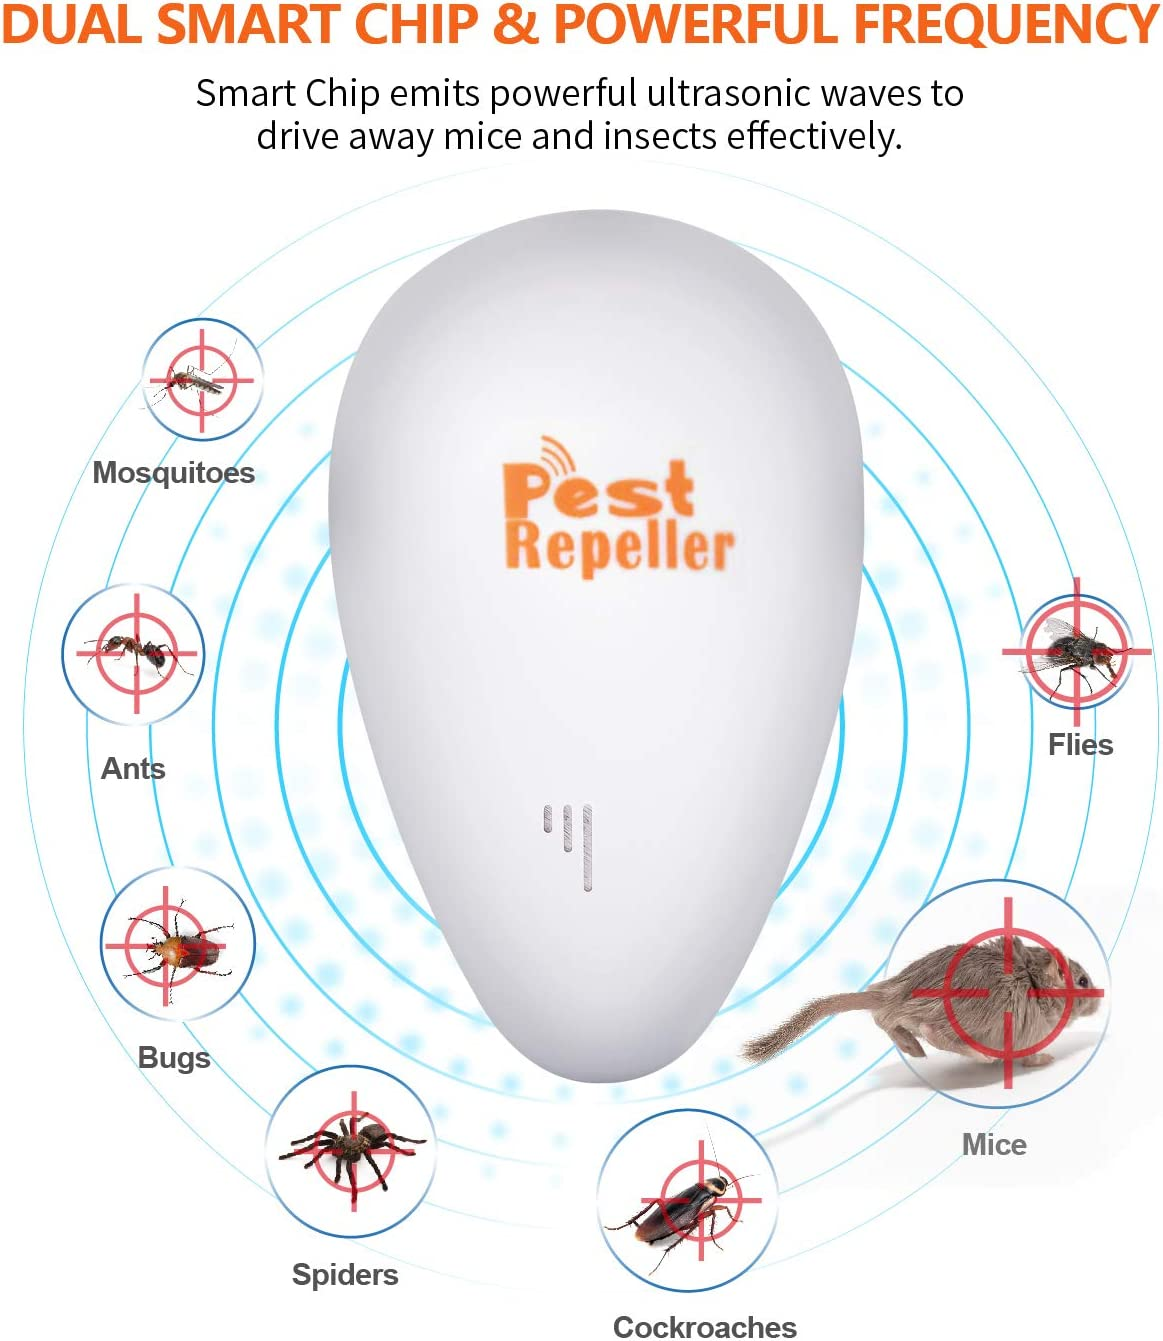 Ultrasonic Pest Repeller 6 Pack, 2020 Newest Electronic Pest Control, Pest Repellent Plug In Mice Repellent Indoor for Flea, Insects, Mosquitoes, Mice, Spiders, Ants, Rats, Roaches, Bugs, Non-Toxic : Garden & Outdoor